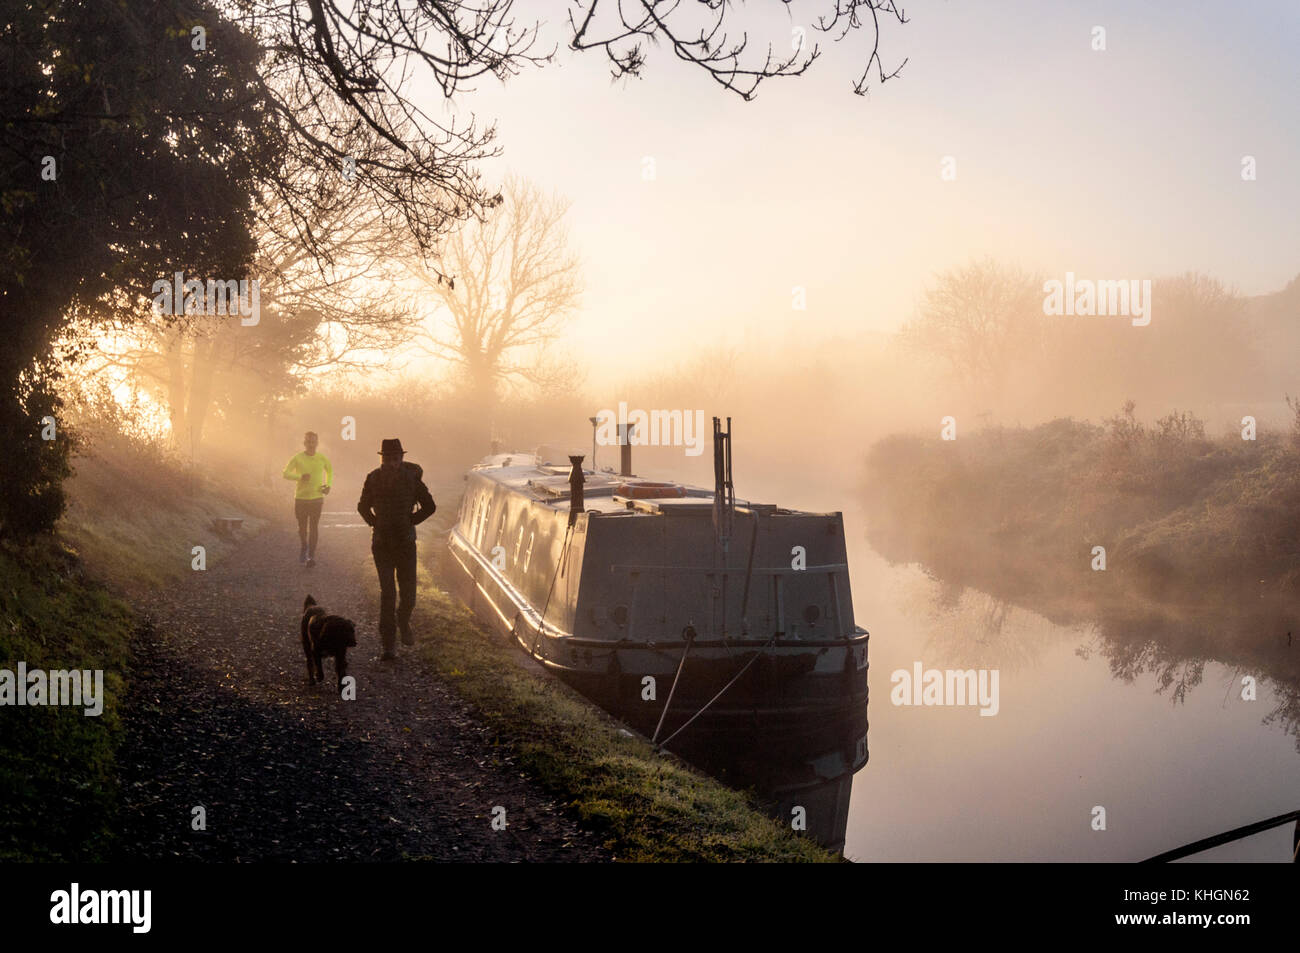 Bathampton, Somerset, UK weather. 17th November 2017. The sun rises over narrowboats on the Kennet and Avon Canal - Stock Image